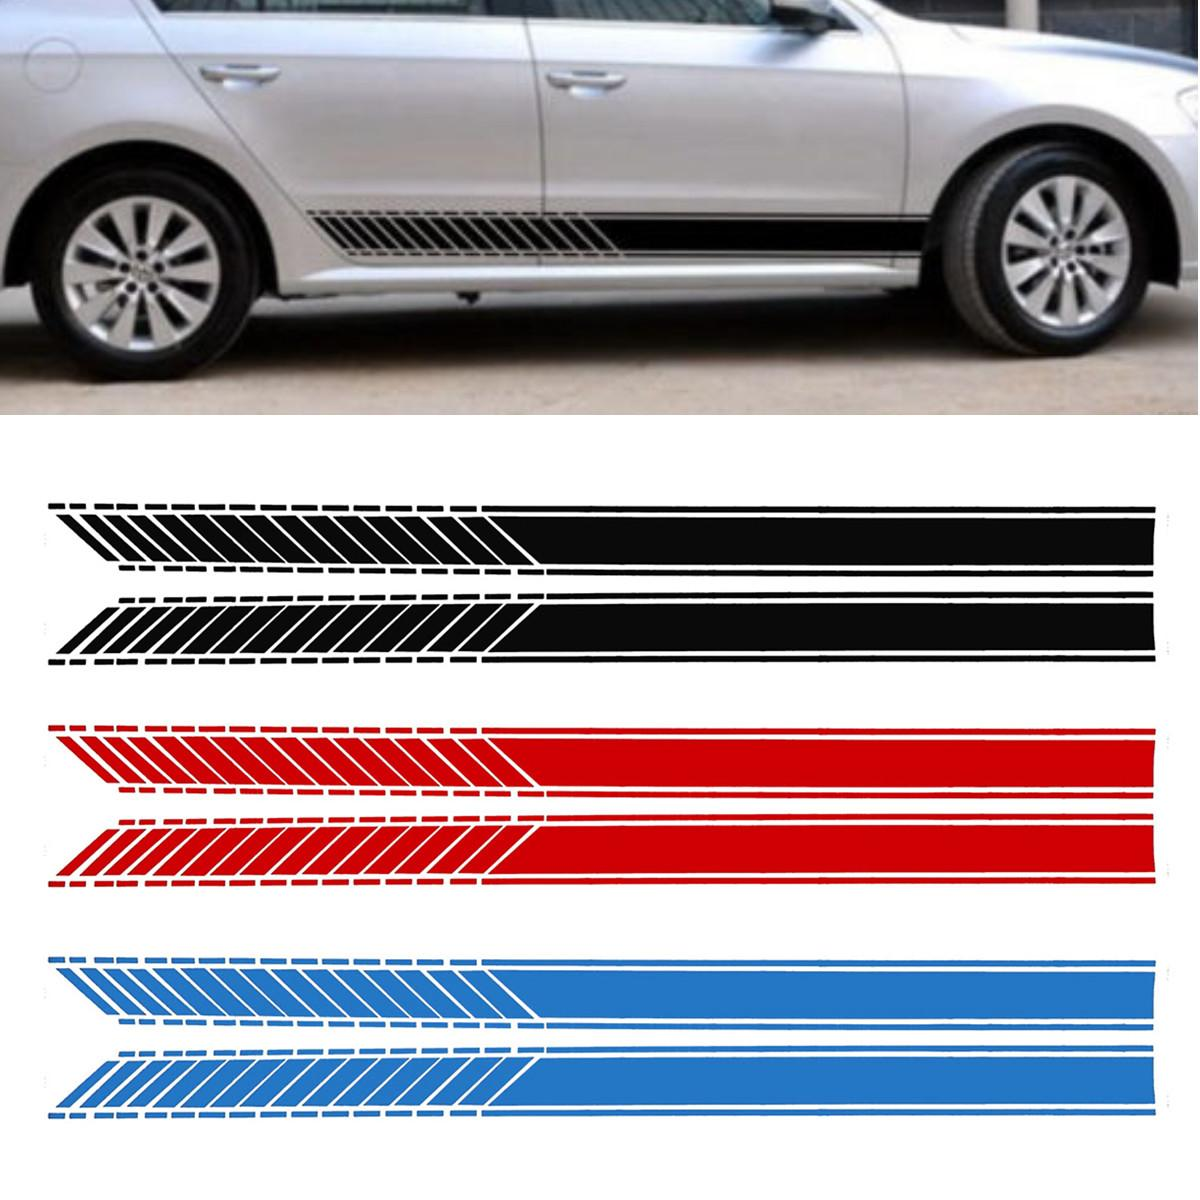 2019 car racing stripe lower door panel decals for lavida vinyl side sticker from haolincar 18 31 dhgate com